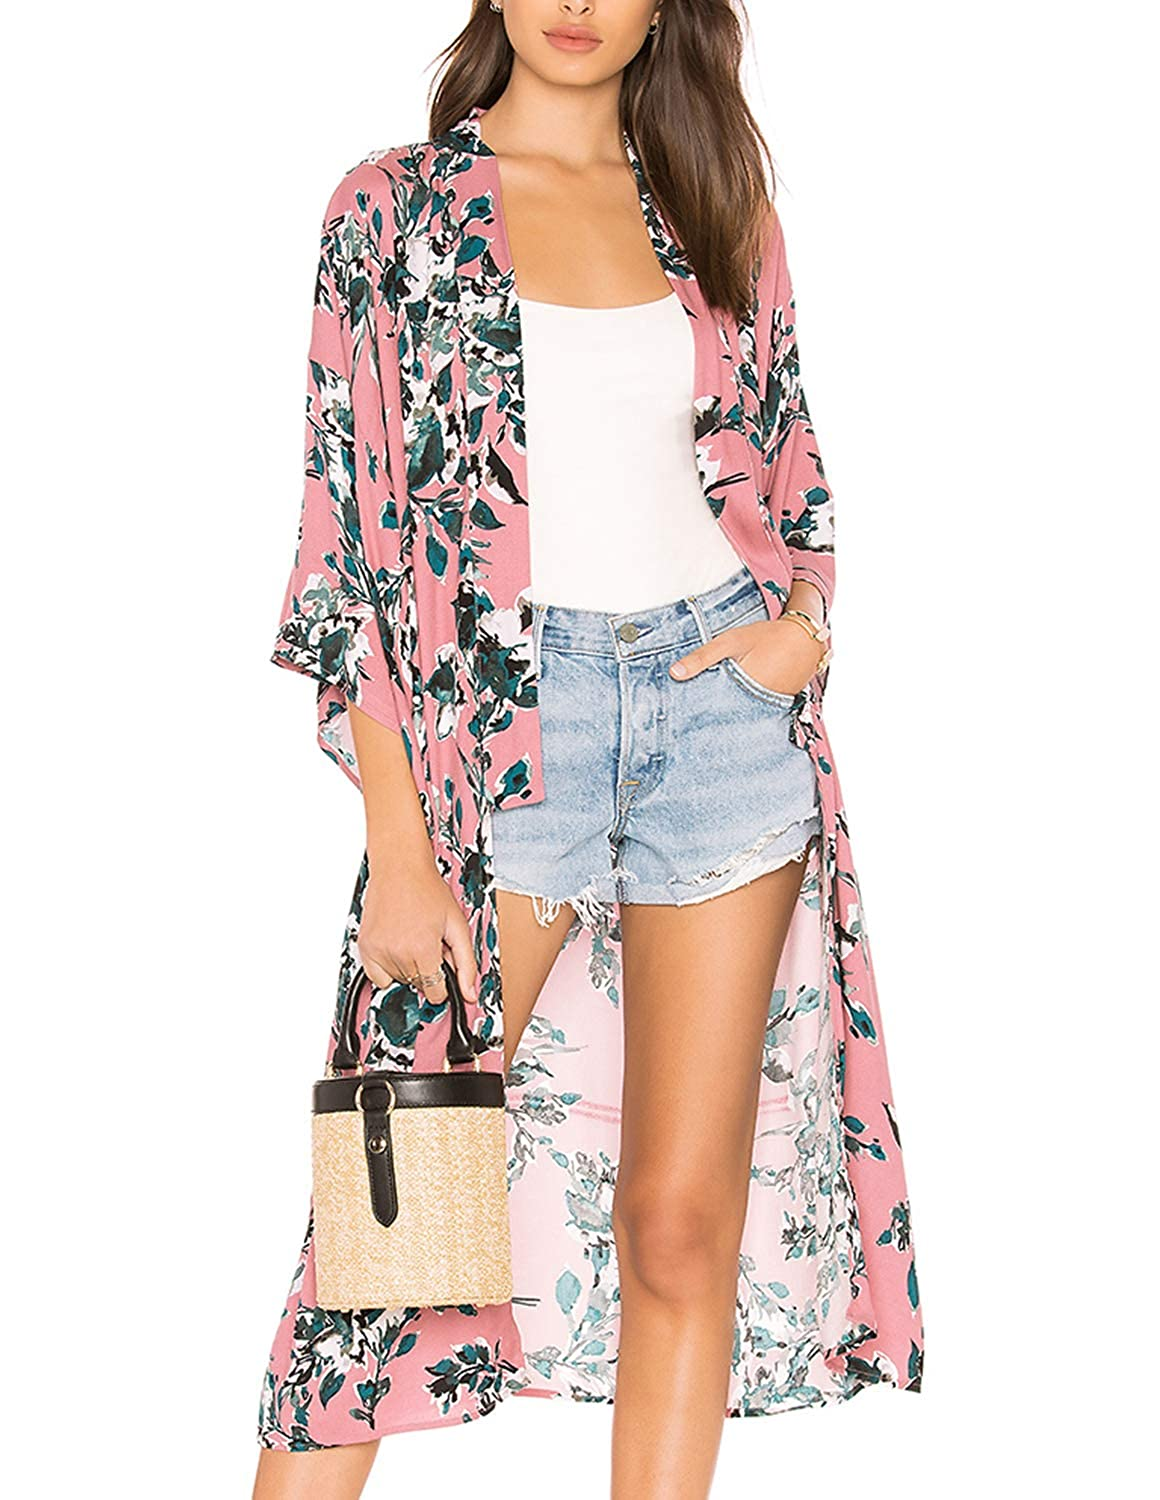 Pink Floral Print Kimonos Cardigans Robe Swimsuit Cover Up for Women